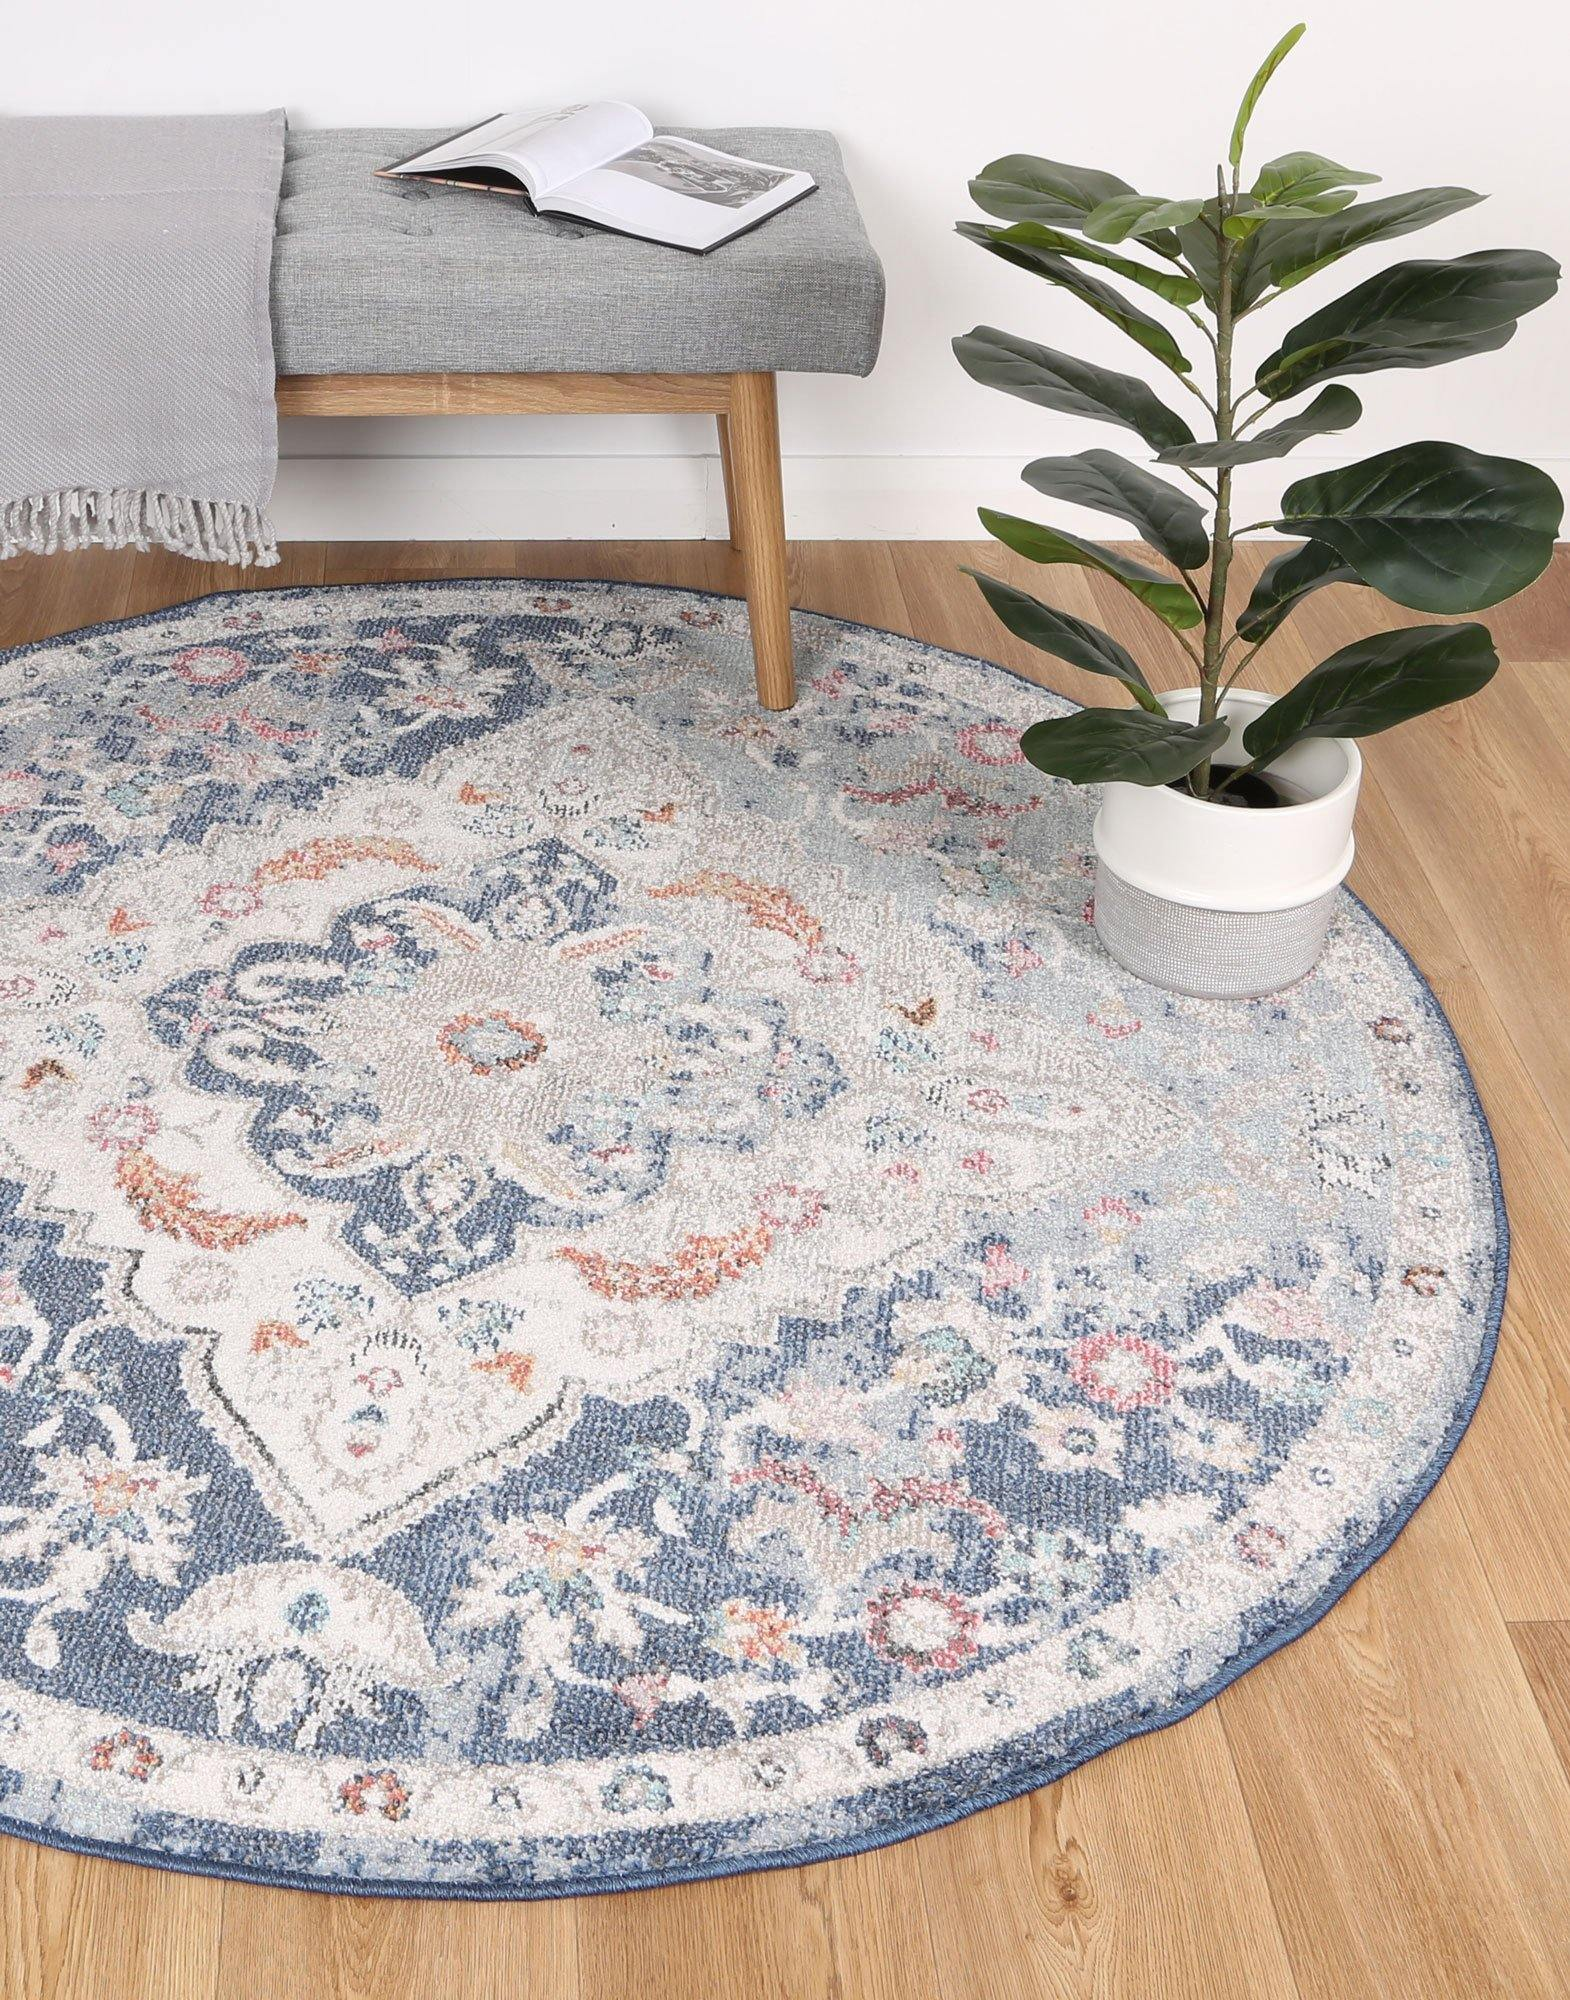 Clara Alexander Transitional Navy Multi Rug - The Rugs